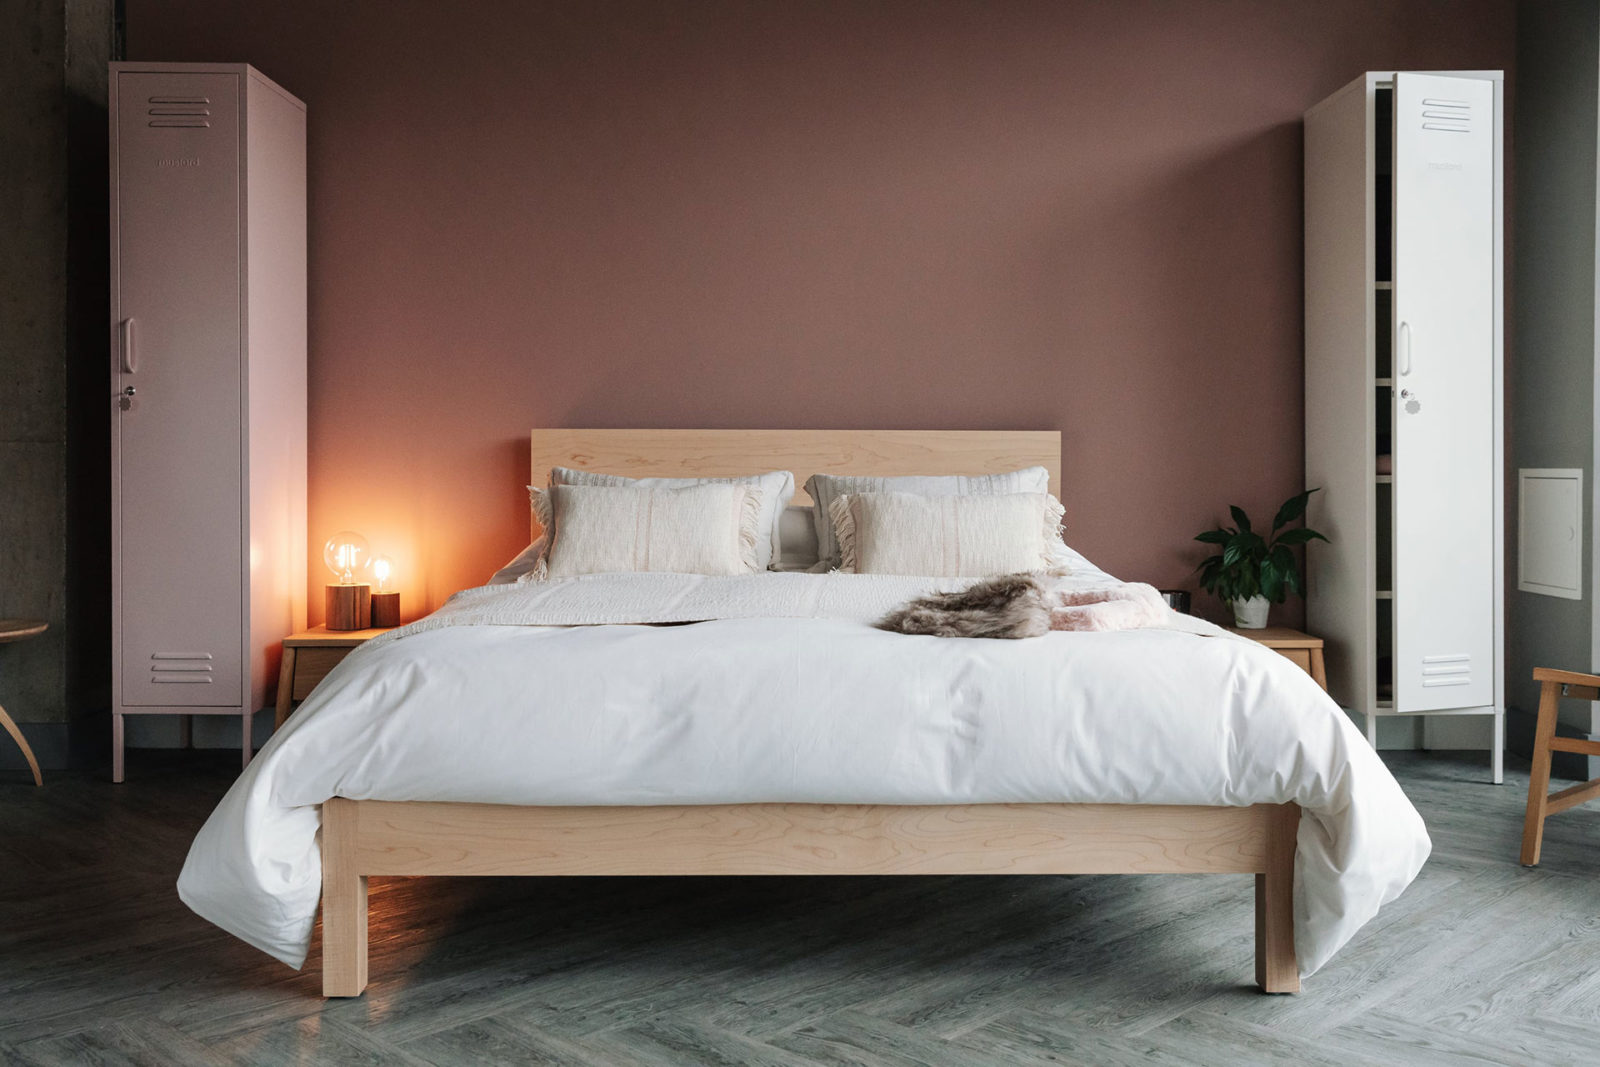 Andas throw and cushions on the Malabar contemporary wooden bed shown in Maple